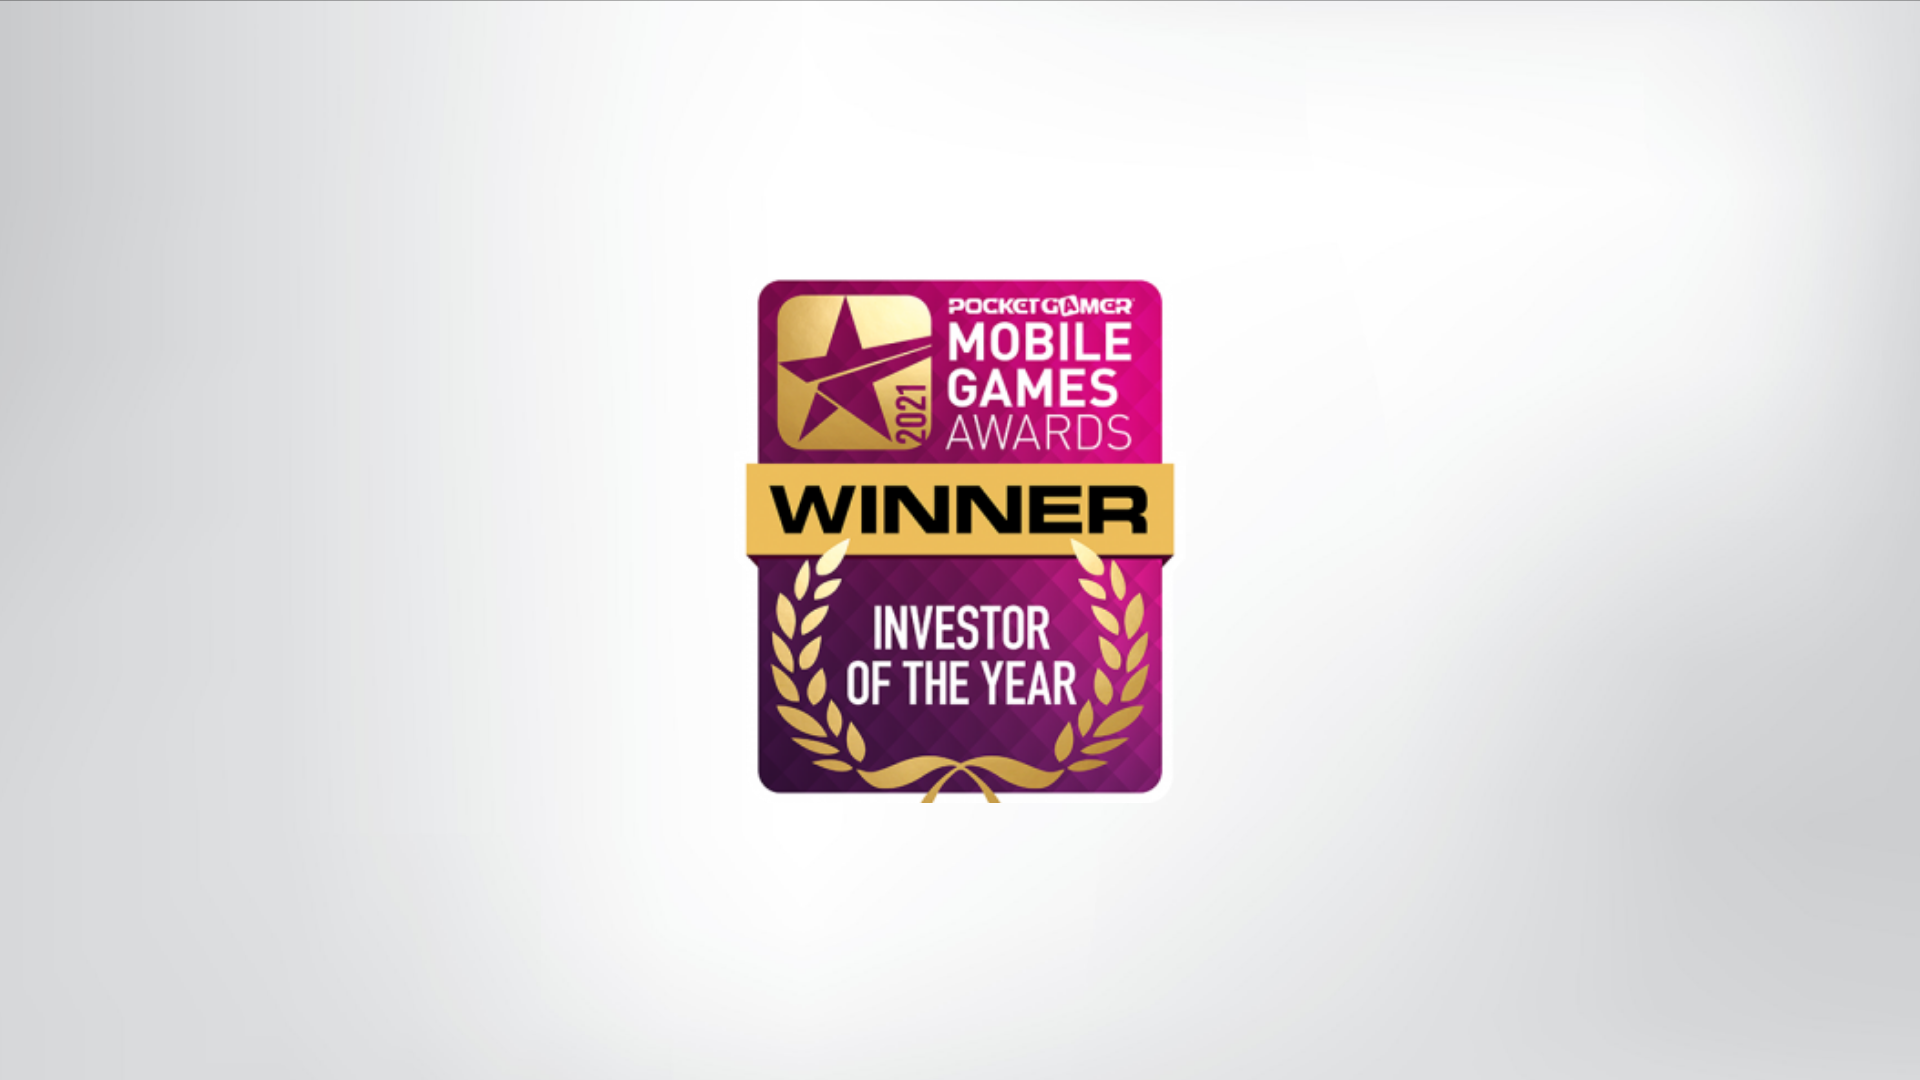 Play Ventures is Mobile Games Awards Investor of The Year